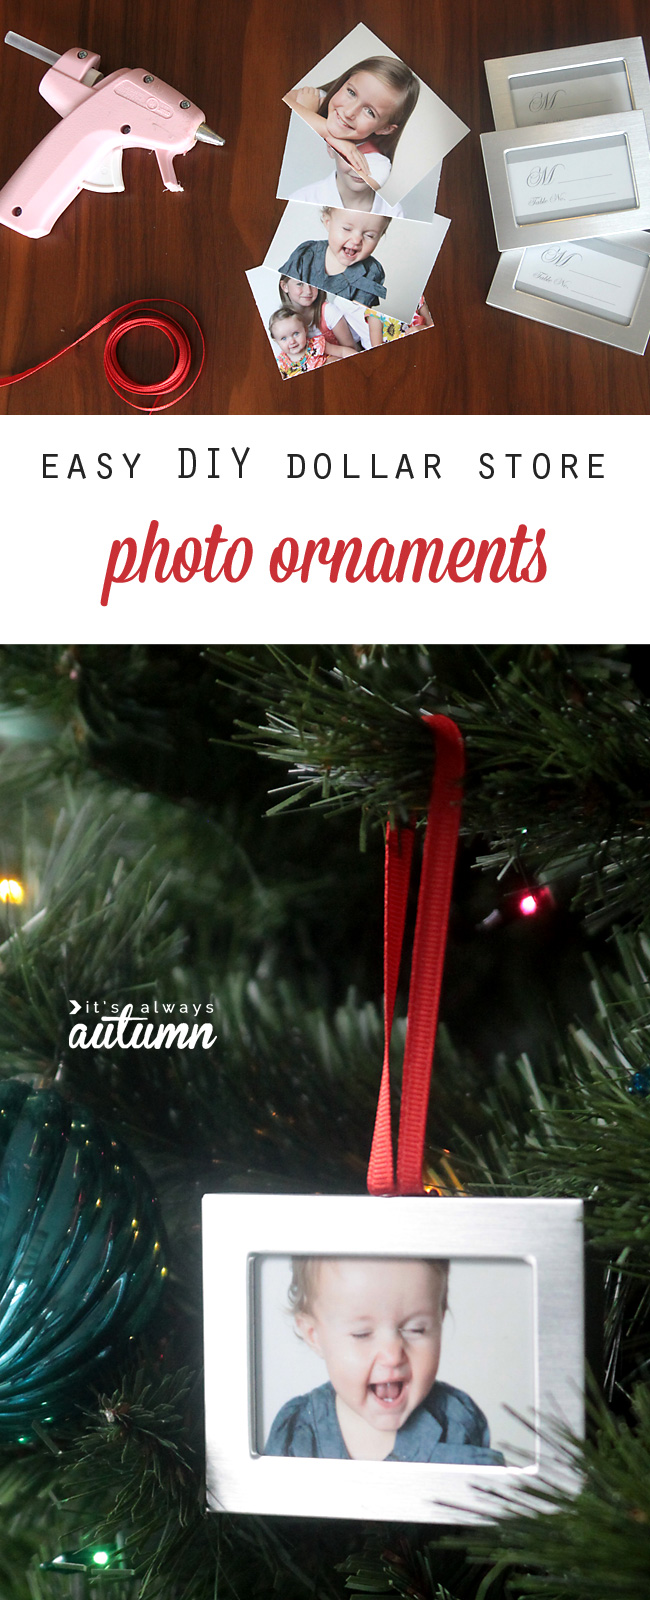 Diy Christmas Ornaments Diy Photo Christmas Ornaments Easy And Cheap It S Always Autumn